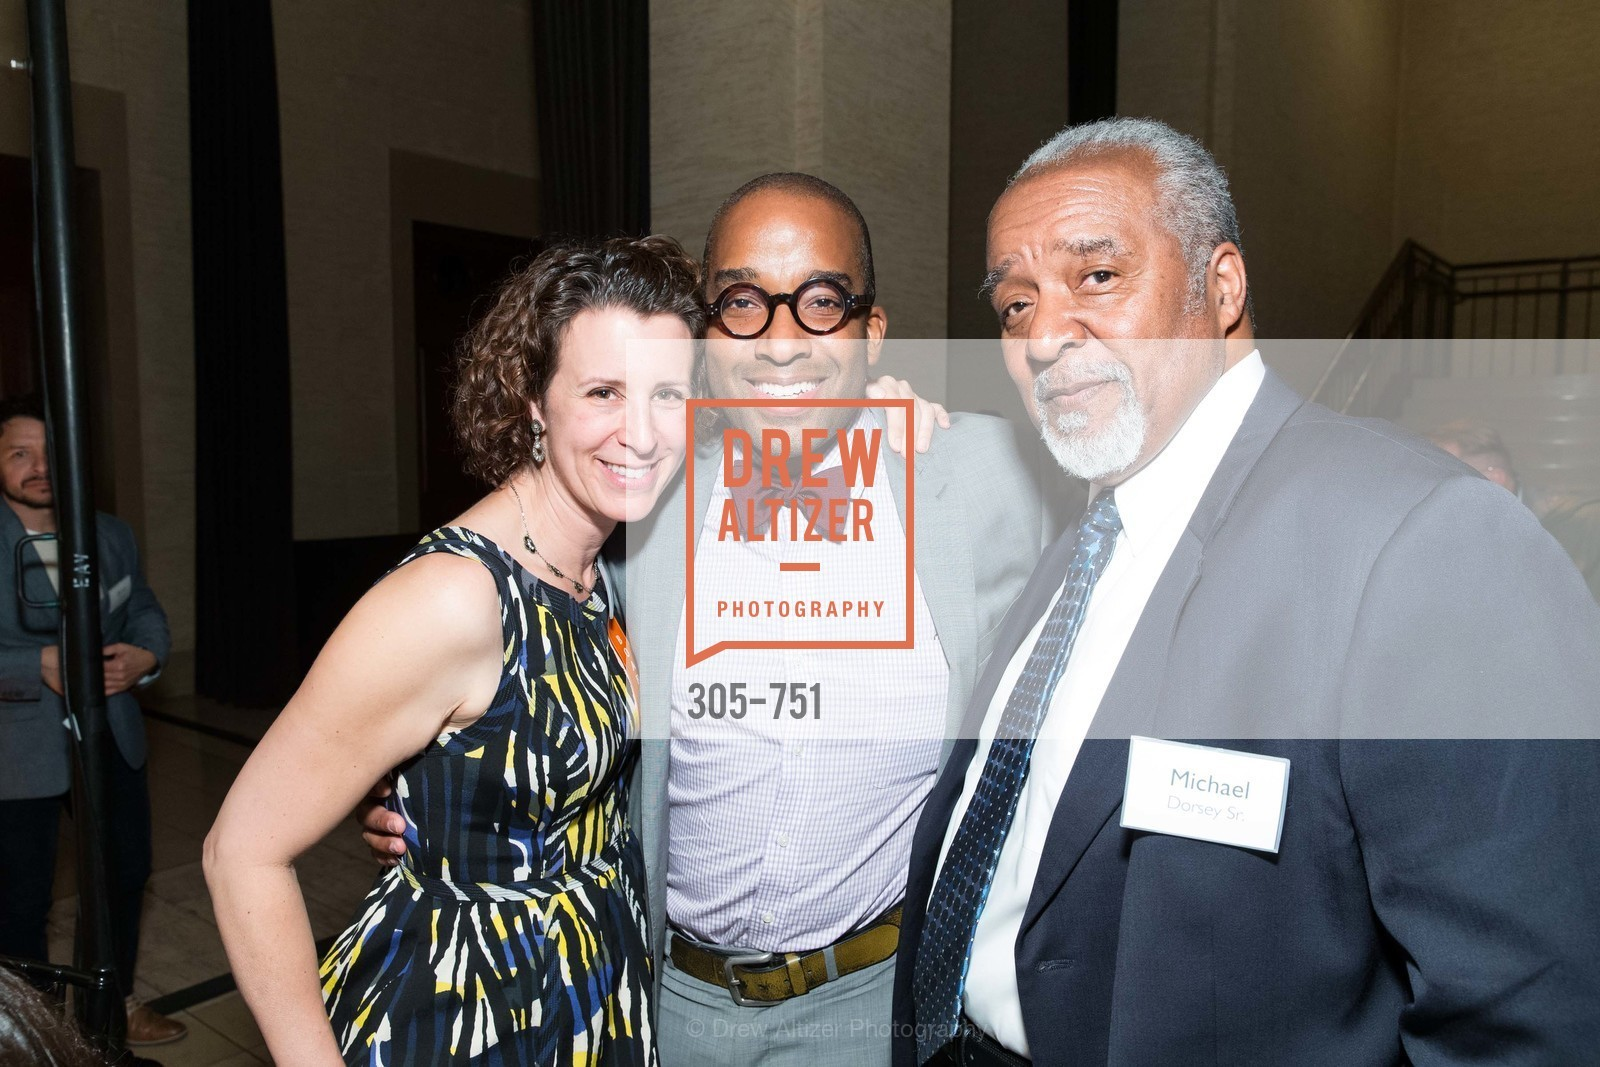 Marni Rosen, Michael Dorsey, Michael Dorsey Sr., CENTER FOR ENVIRONMENTAL HEALTH (CEH) 2015 Gala, Bently Reserve, May 28th, 2015,Drew Altizer, Drew Altizer Photography, full-service agency, private events, San Francisco photographer, photographer california